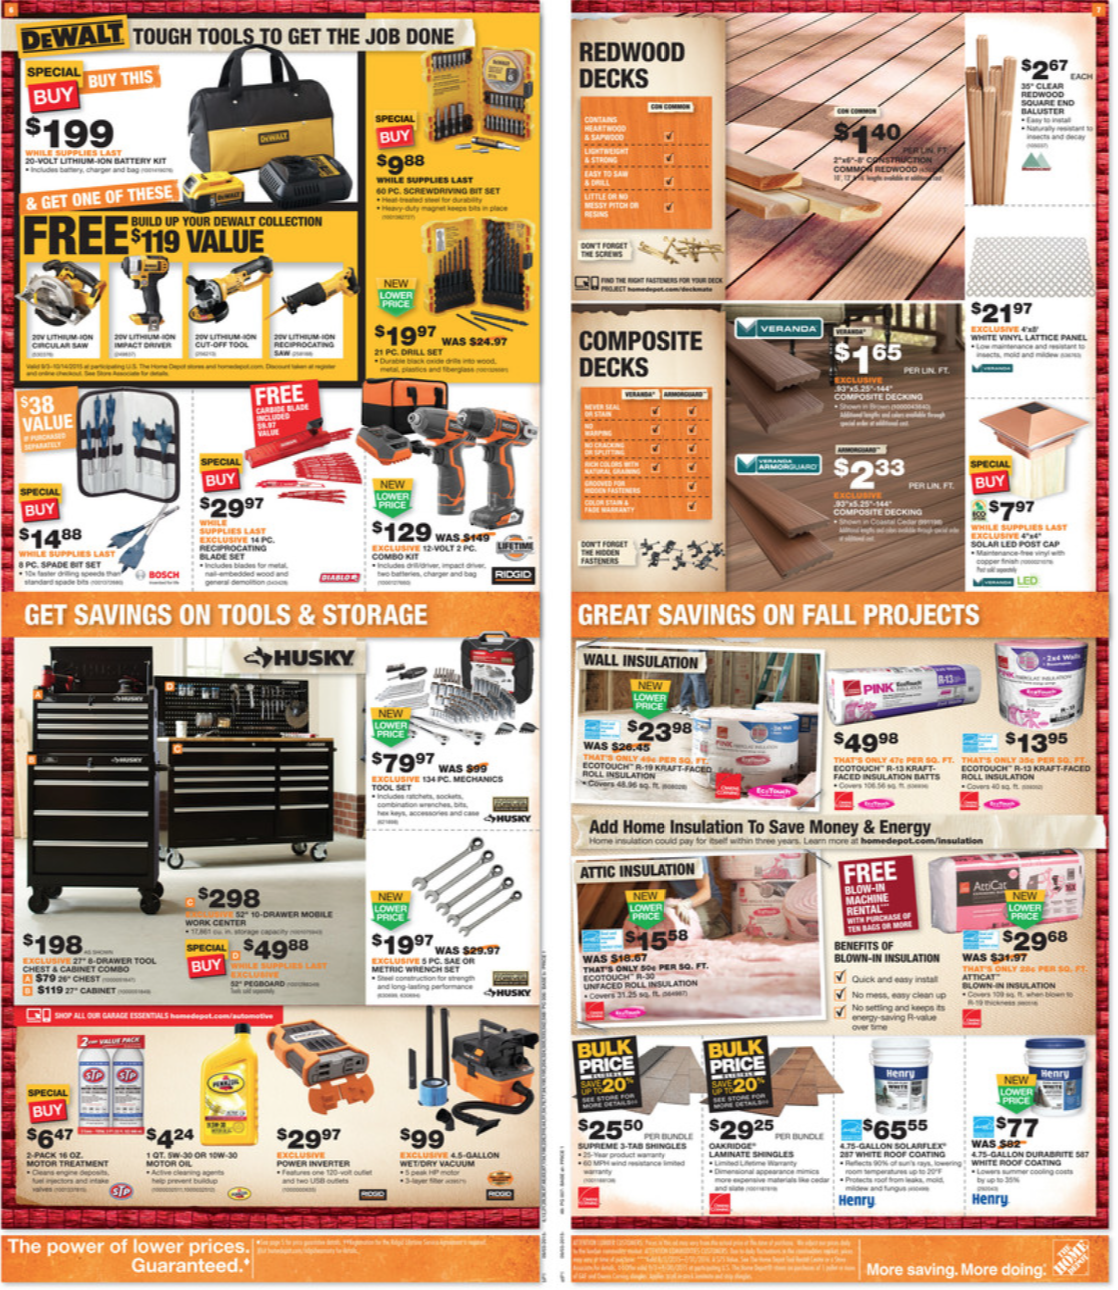 Home Depot Labor Day Sale for 2015 – Ads, Mailer & Coupons